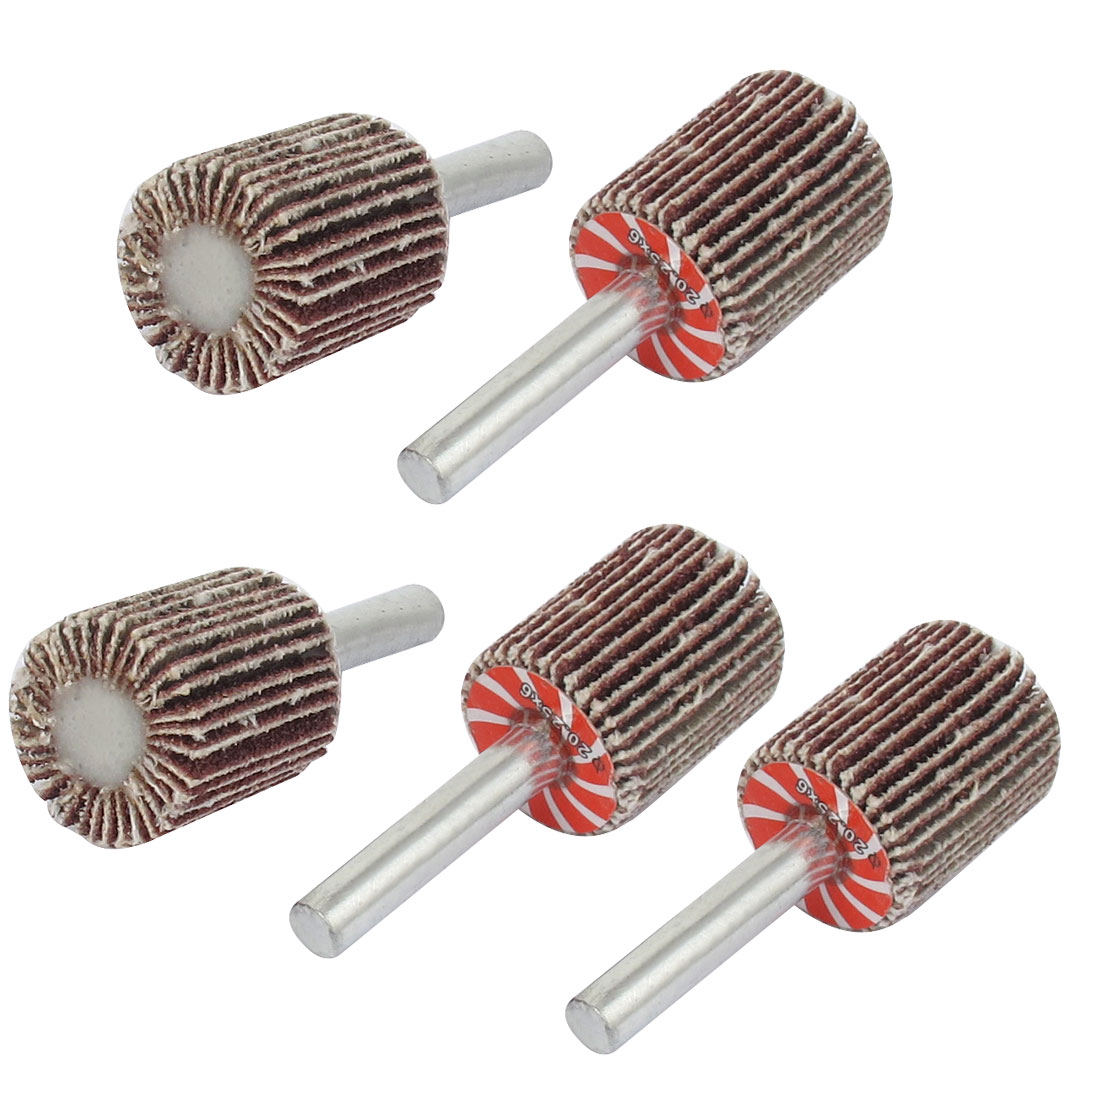 5PCS 6mm Dia Mounted Shank 20mm Flap Wheel Disc Grinding Polishing Tool